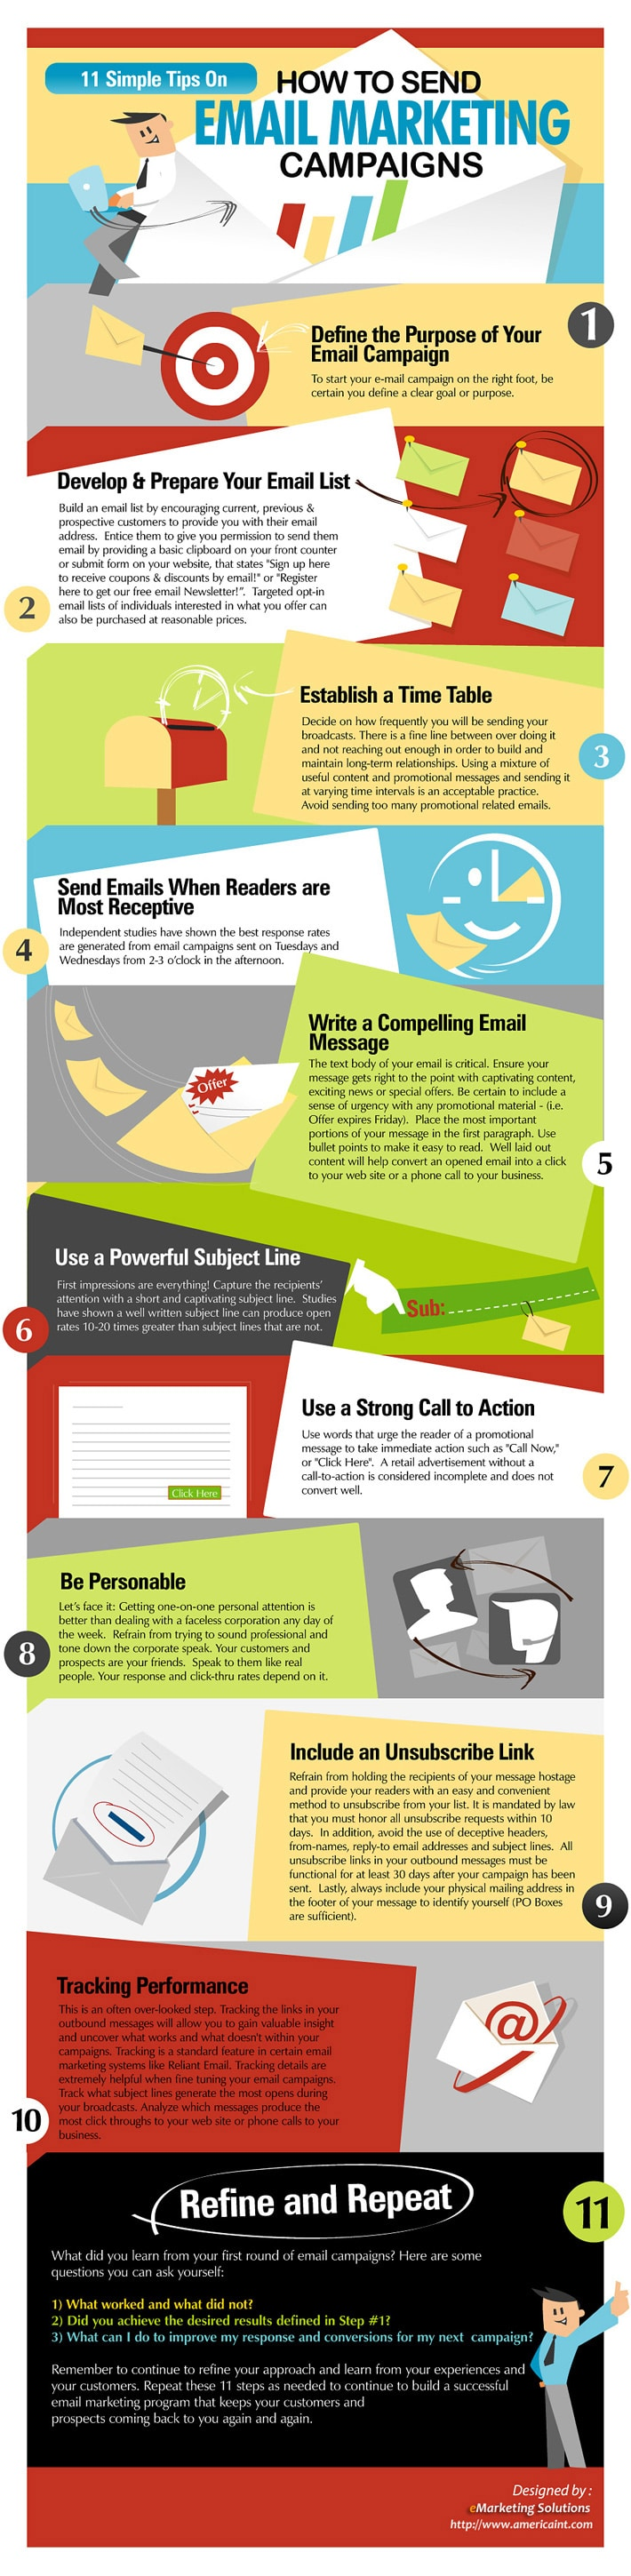 ultimate-email-marketing-guide